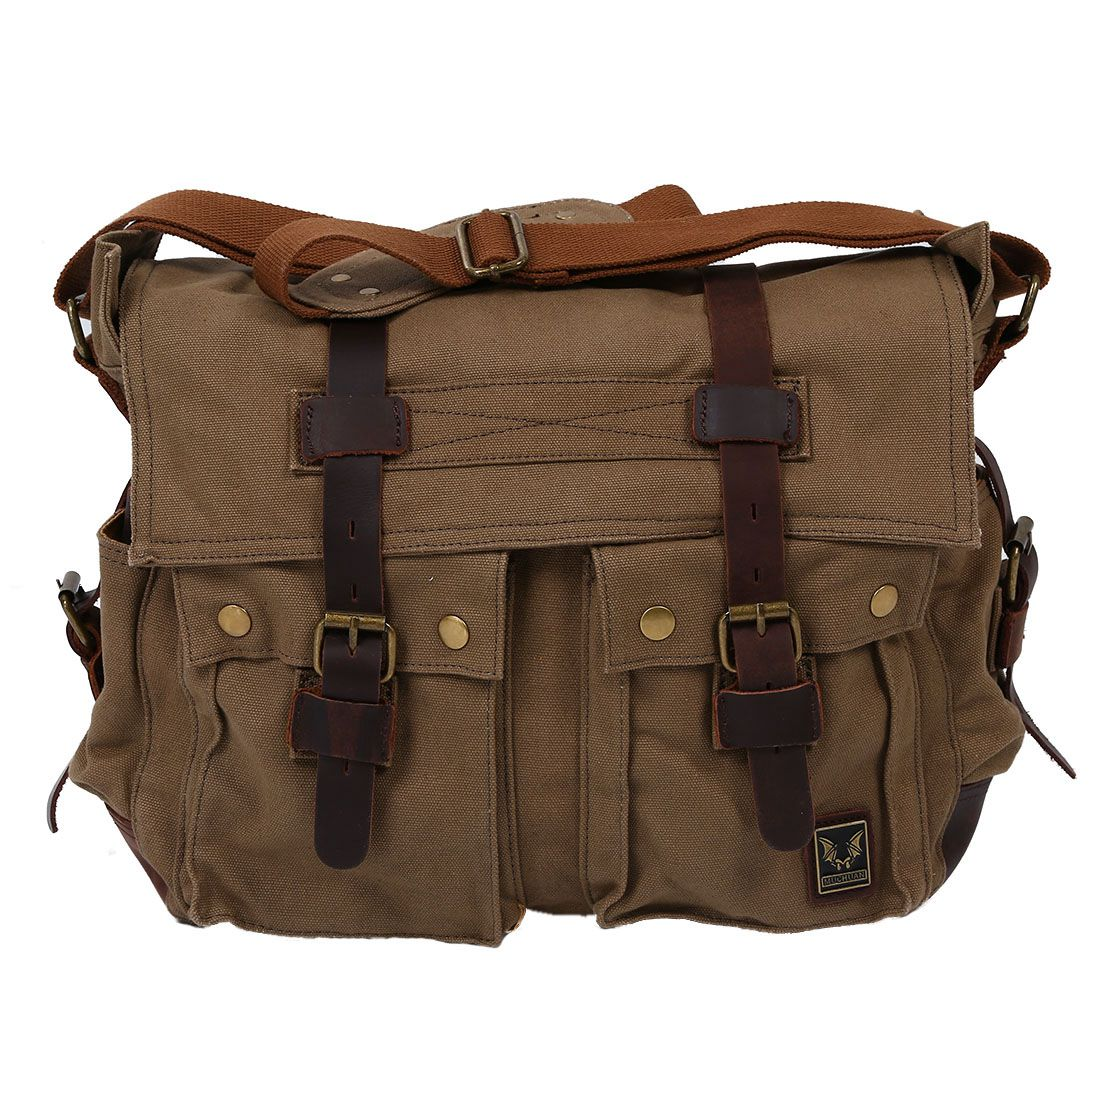 все цены на Men's Vintage Canvas Leather School Shoulder Bag Messenger Sling Crossbody Bag Satchel